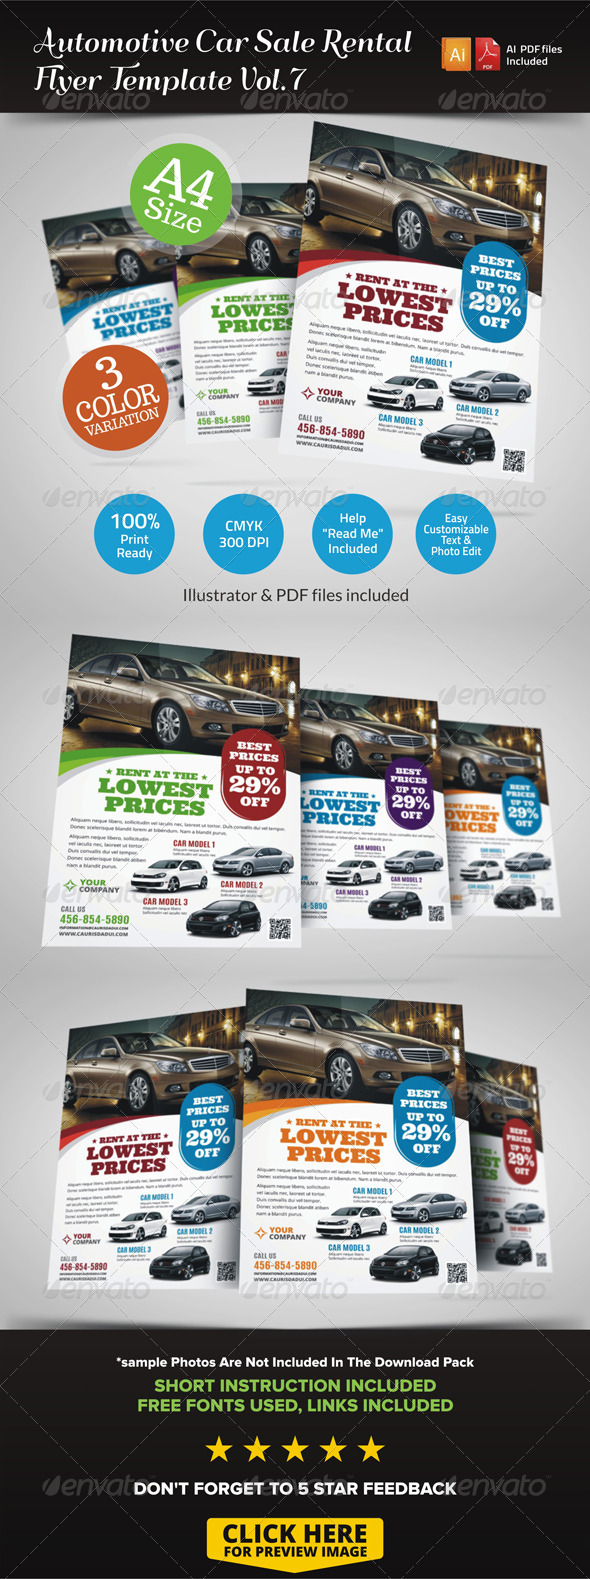 GraphicRiver Automotive Car Sale Rental Flyer Ad Vol.7 7262537